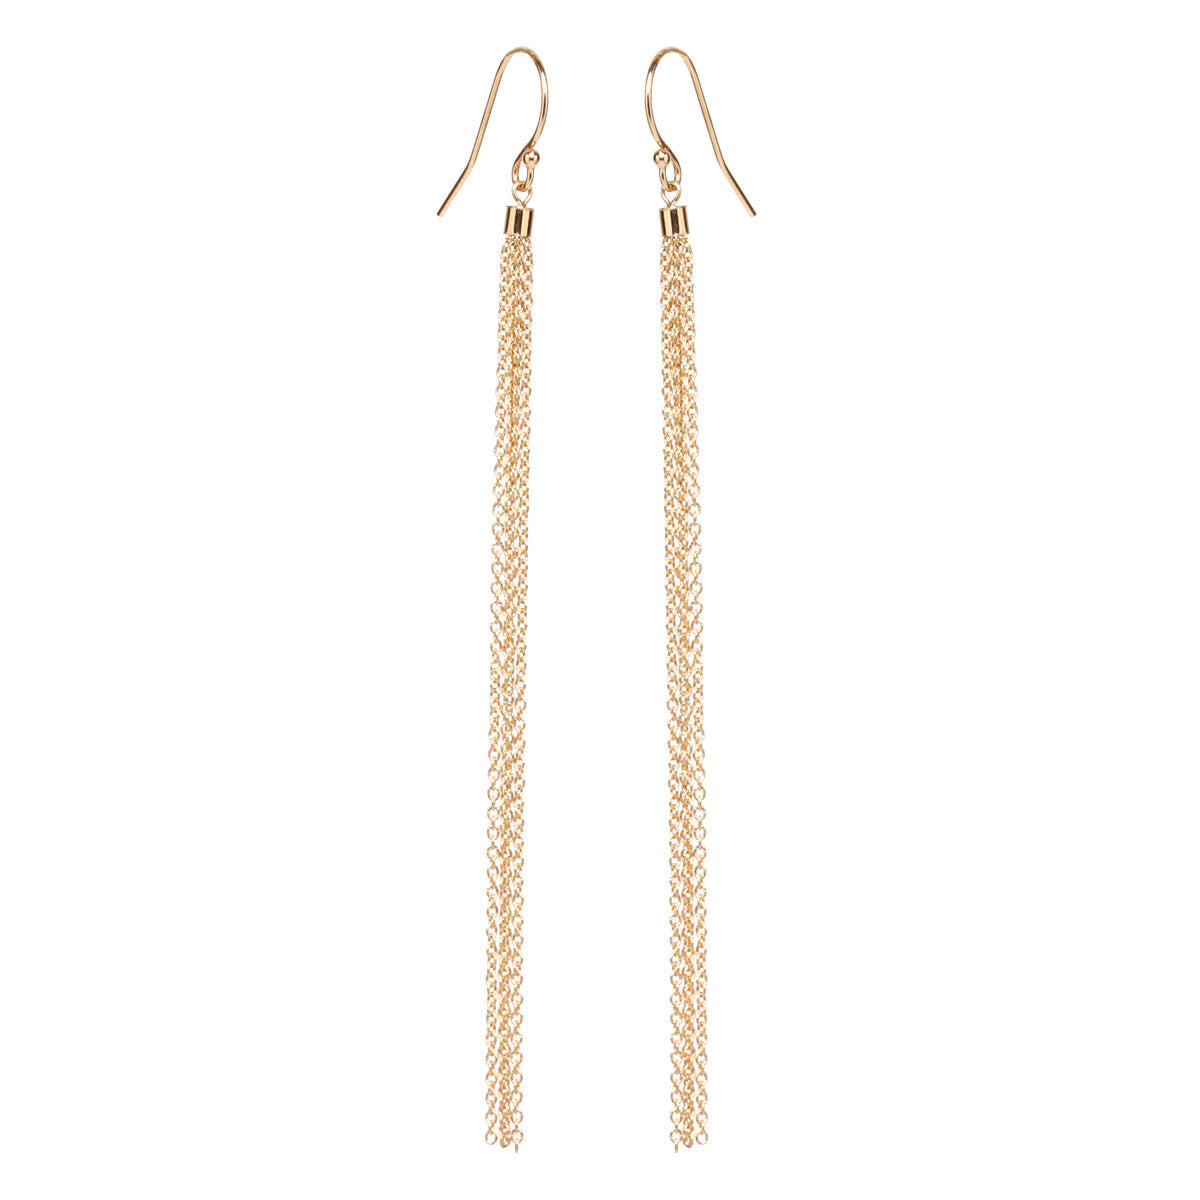 Zoë Chicco 14kt Yellow Gold Long Thin Tassel Earrings